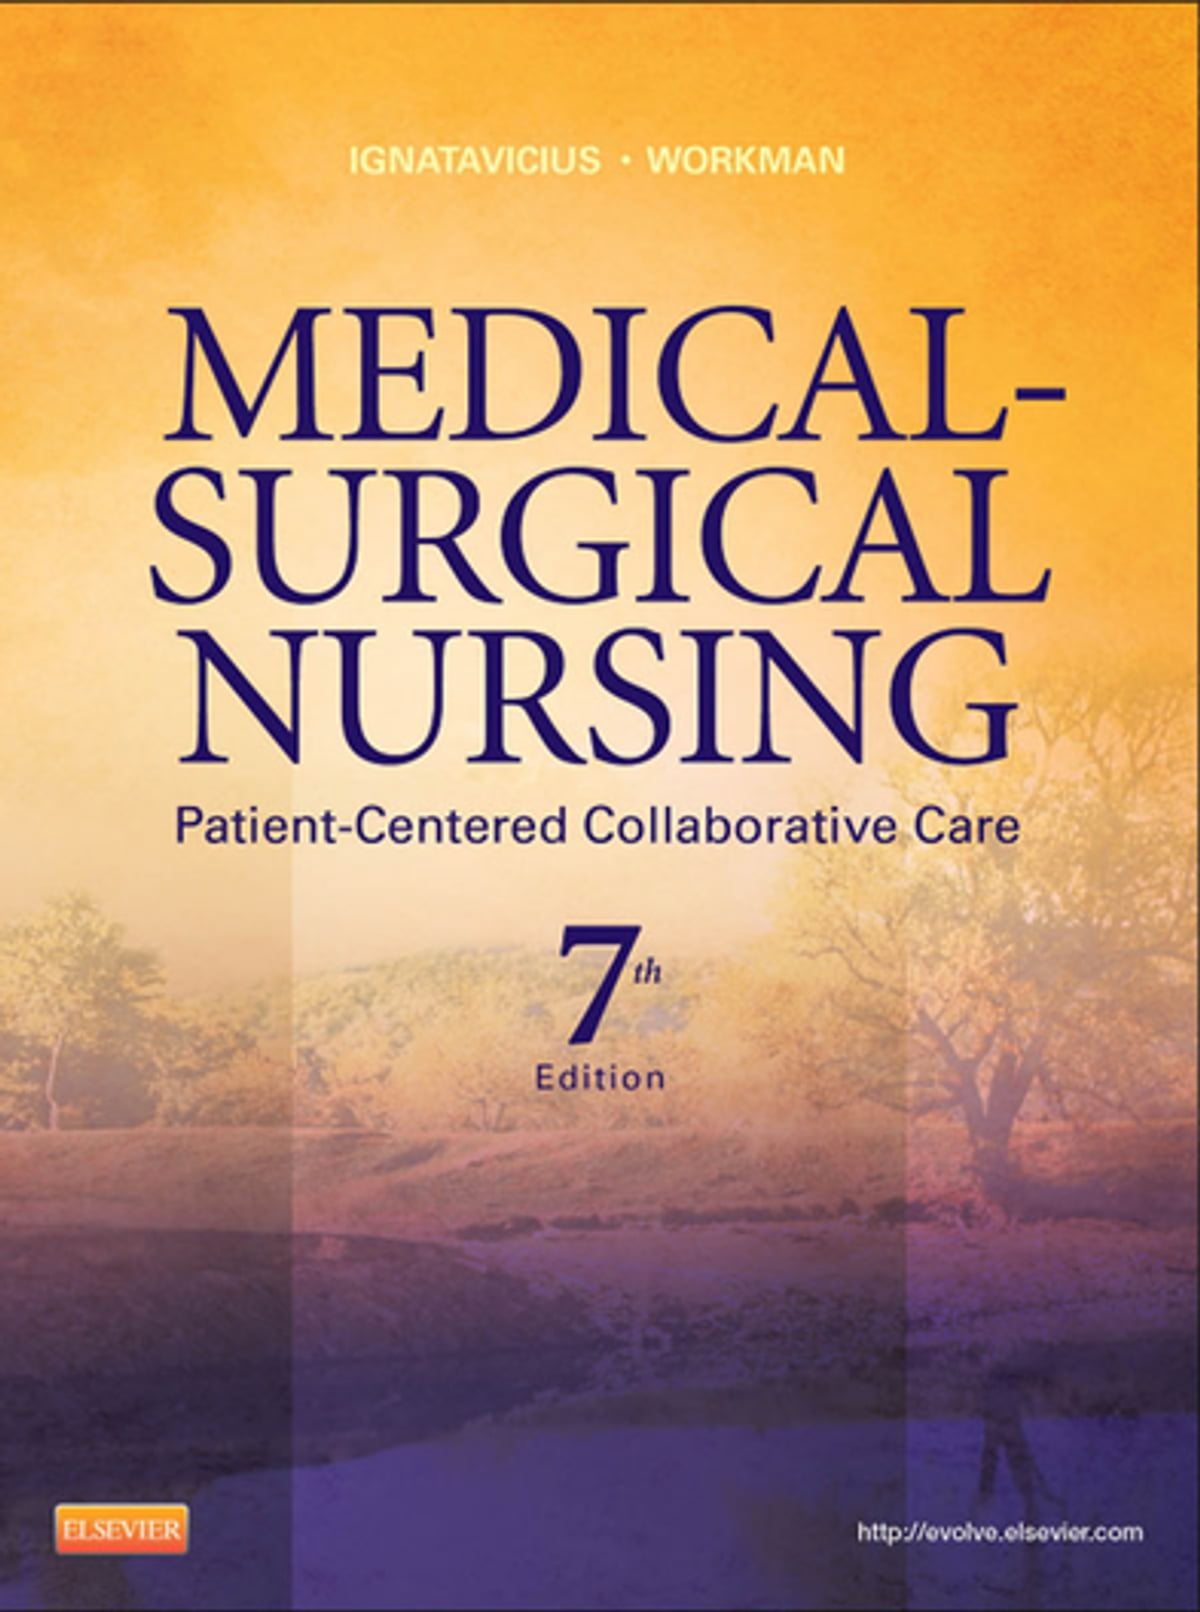 Clinical Companion for Medical-Surgical Nursing eBook by Donna D.  Ignatavicius - 9781455772575 | Rakuten Kobo